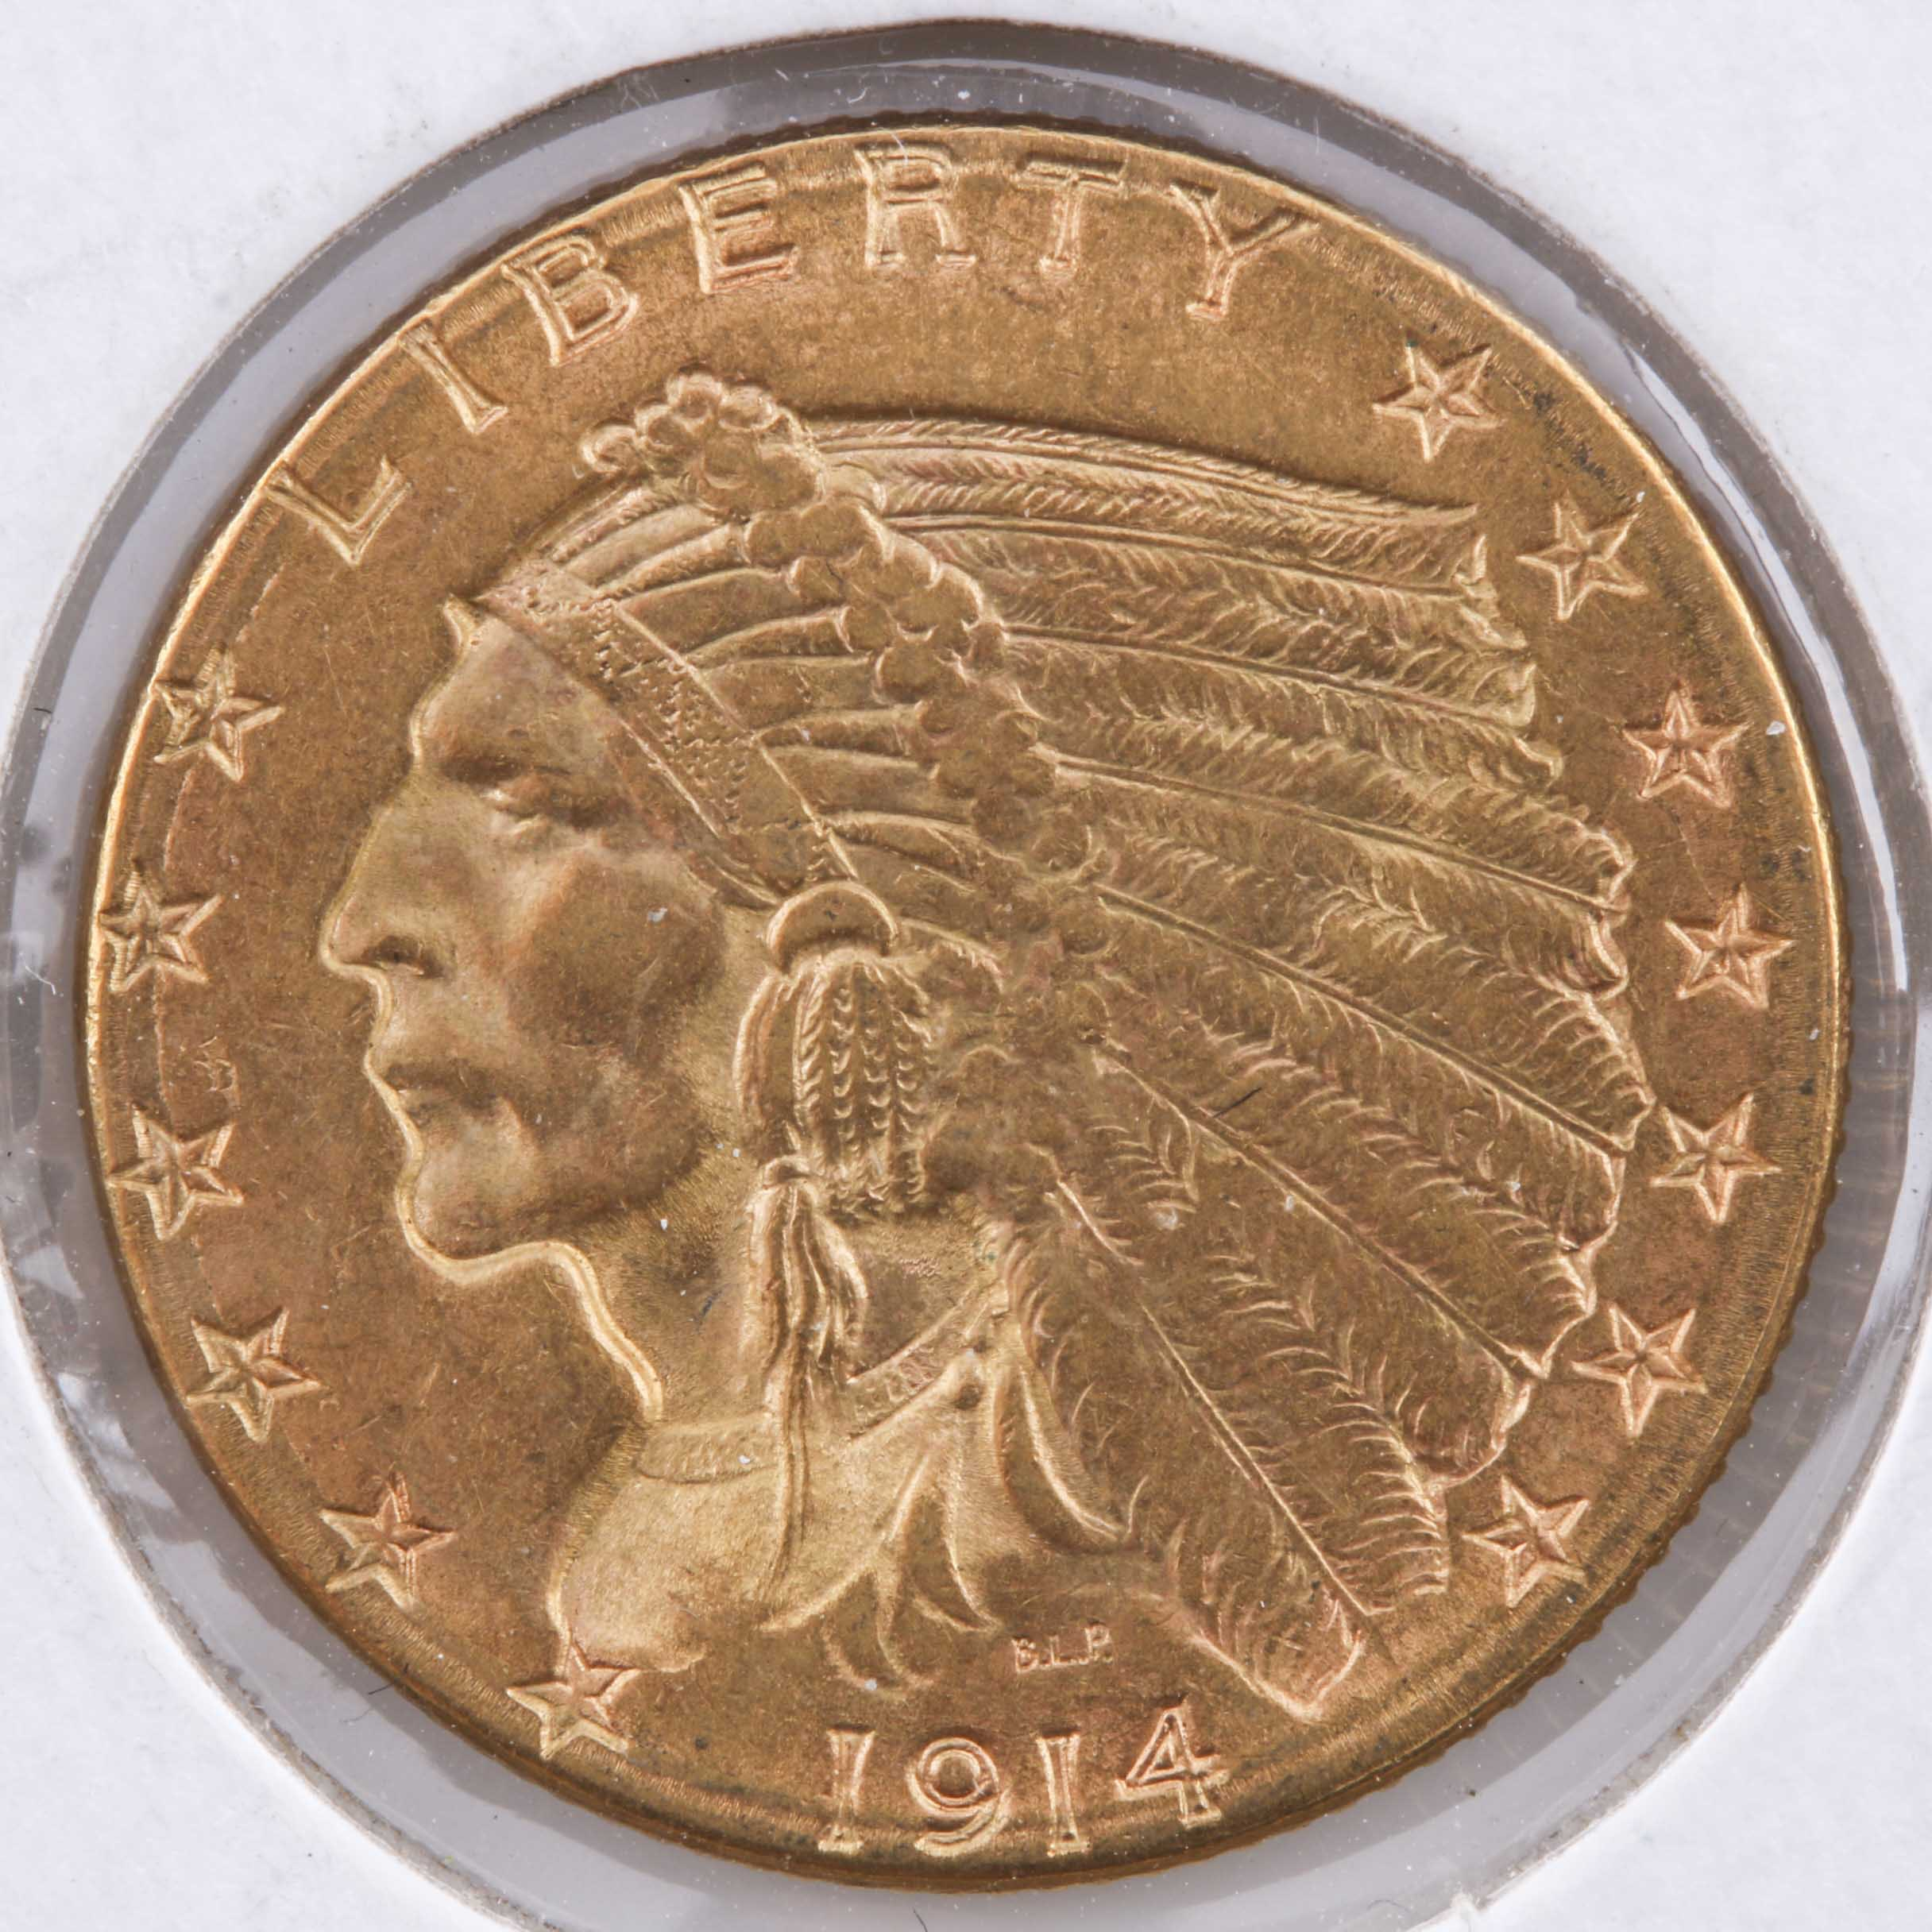 1914 D $2 1/2 Indian Head Gold Coin